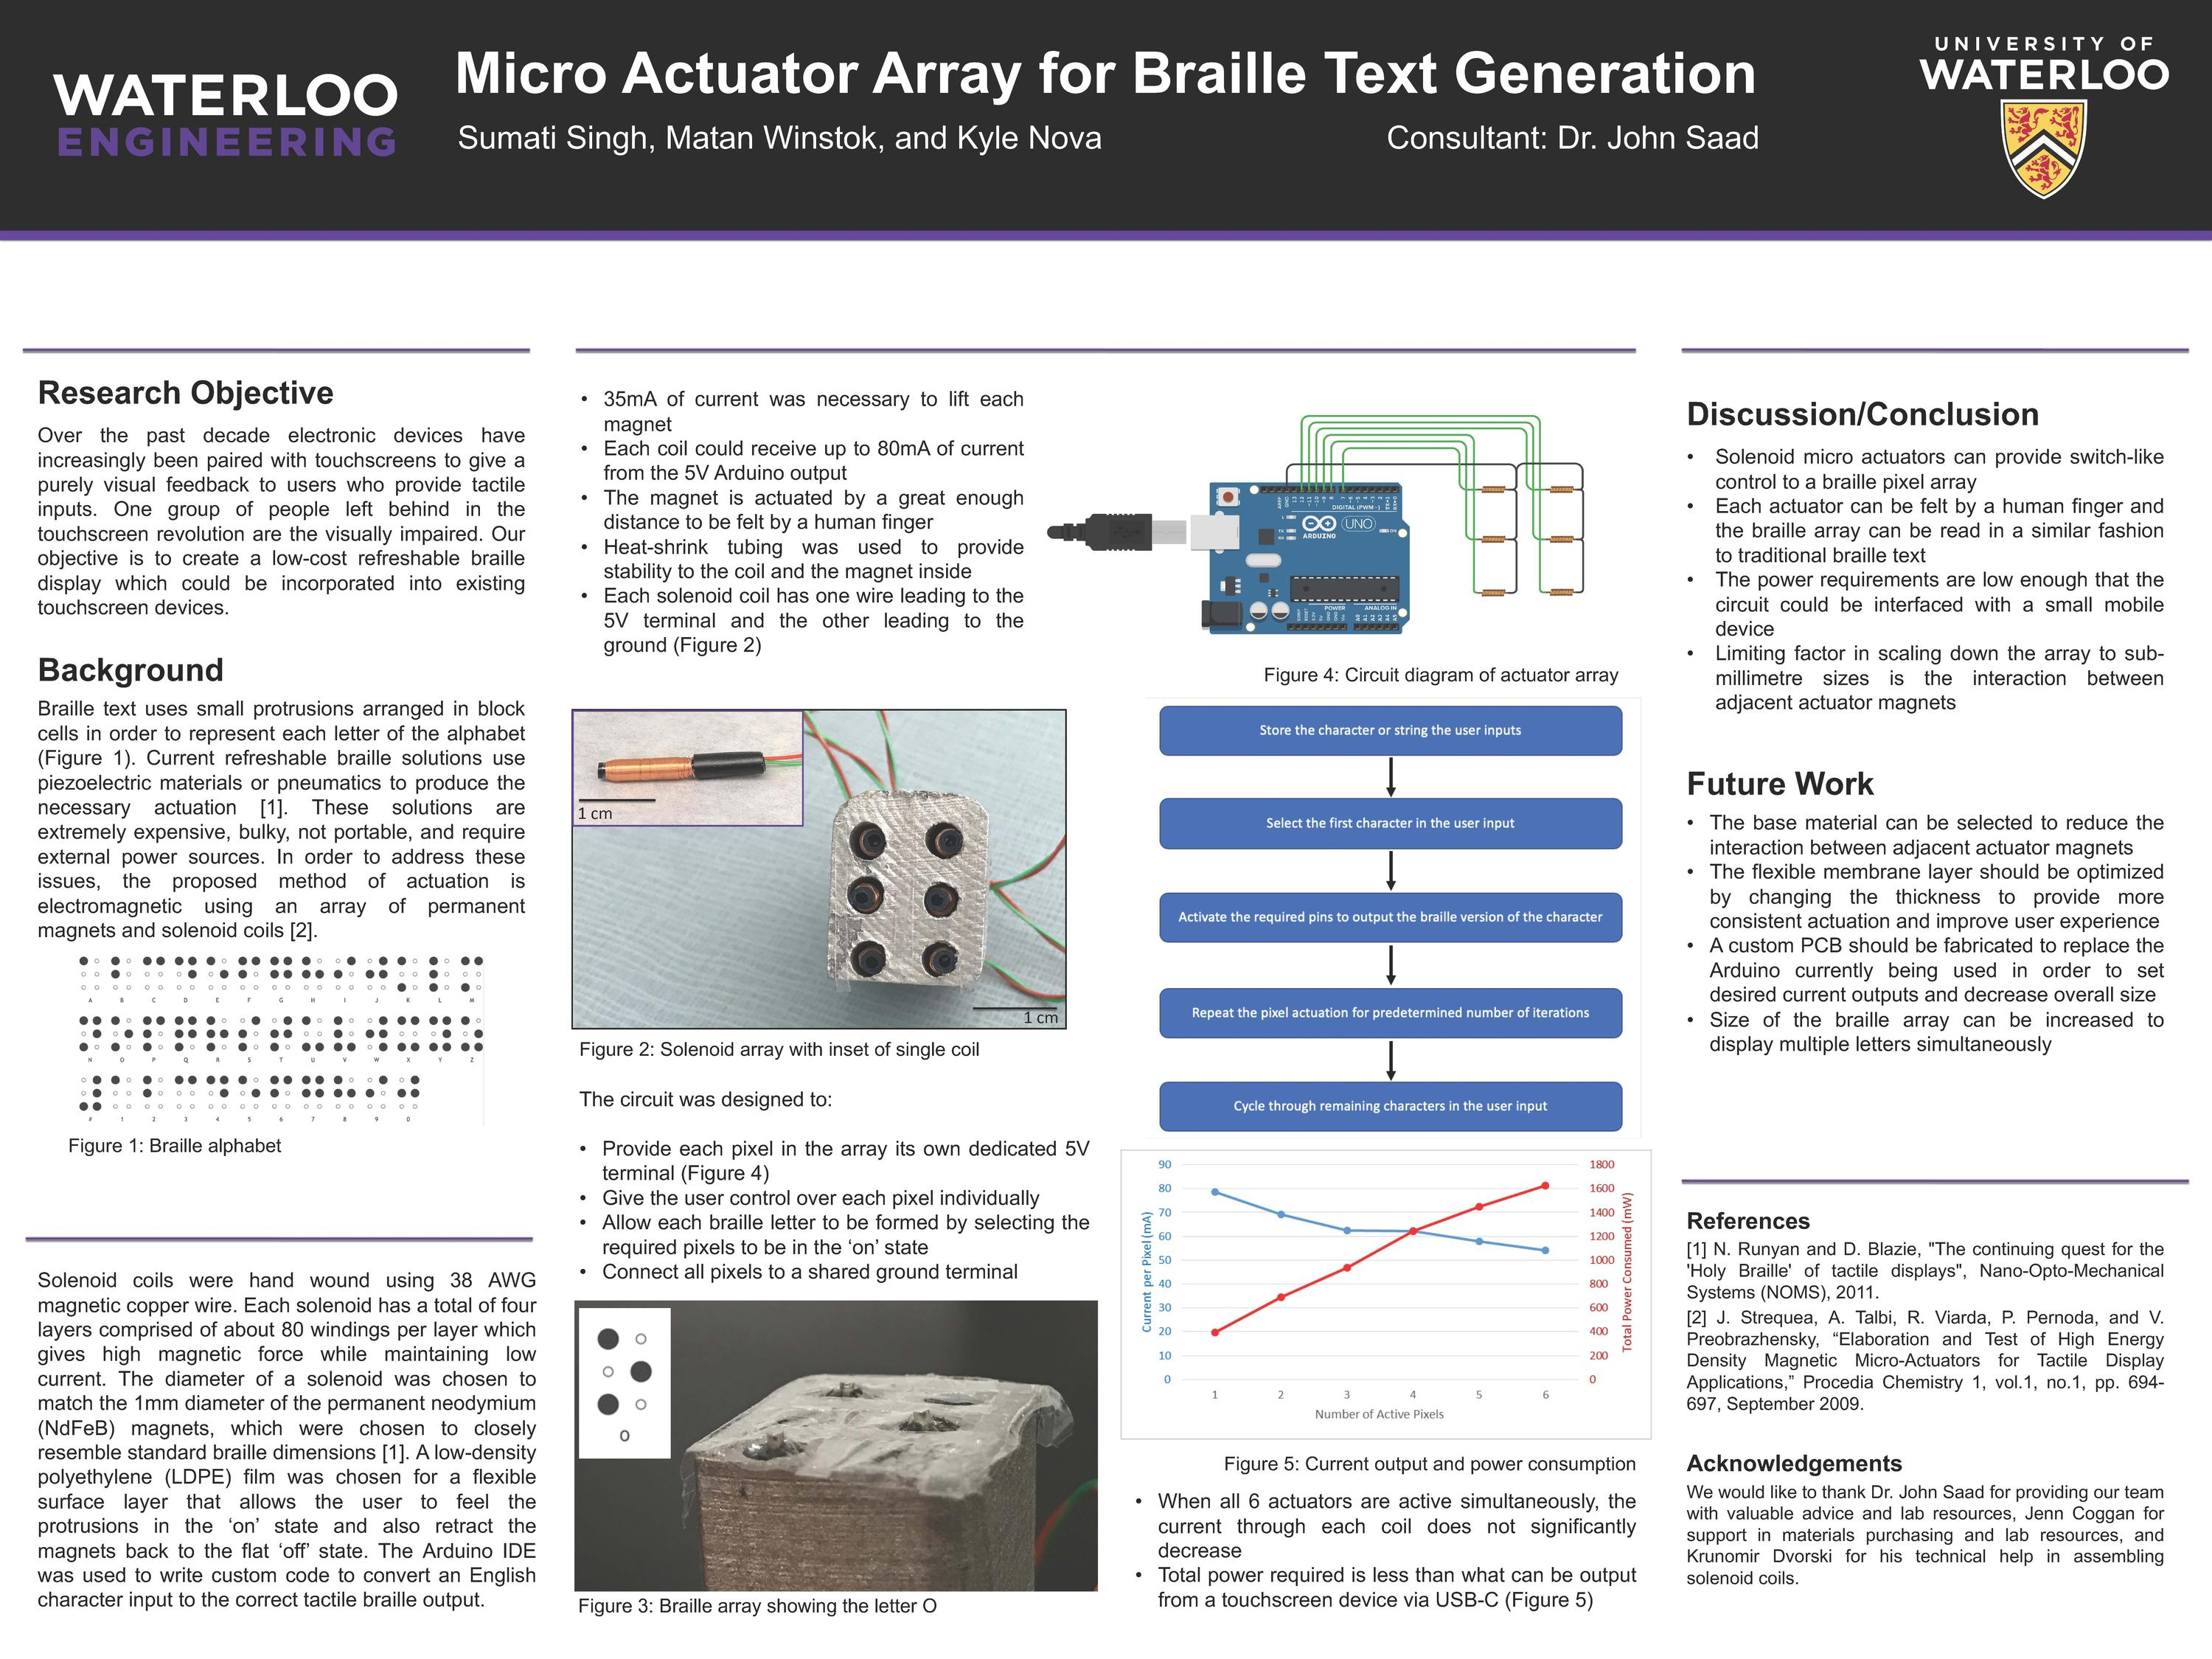 Group 2, for the micro actuator array they created to generate braille text for electronic devices.